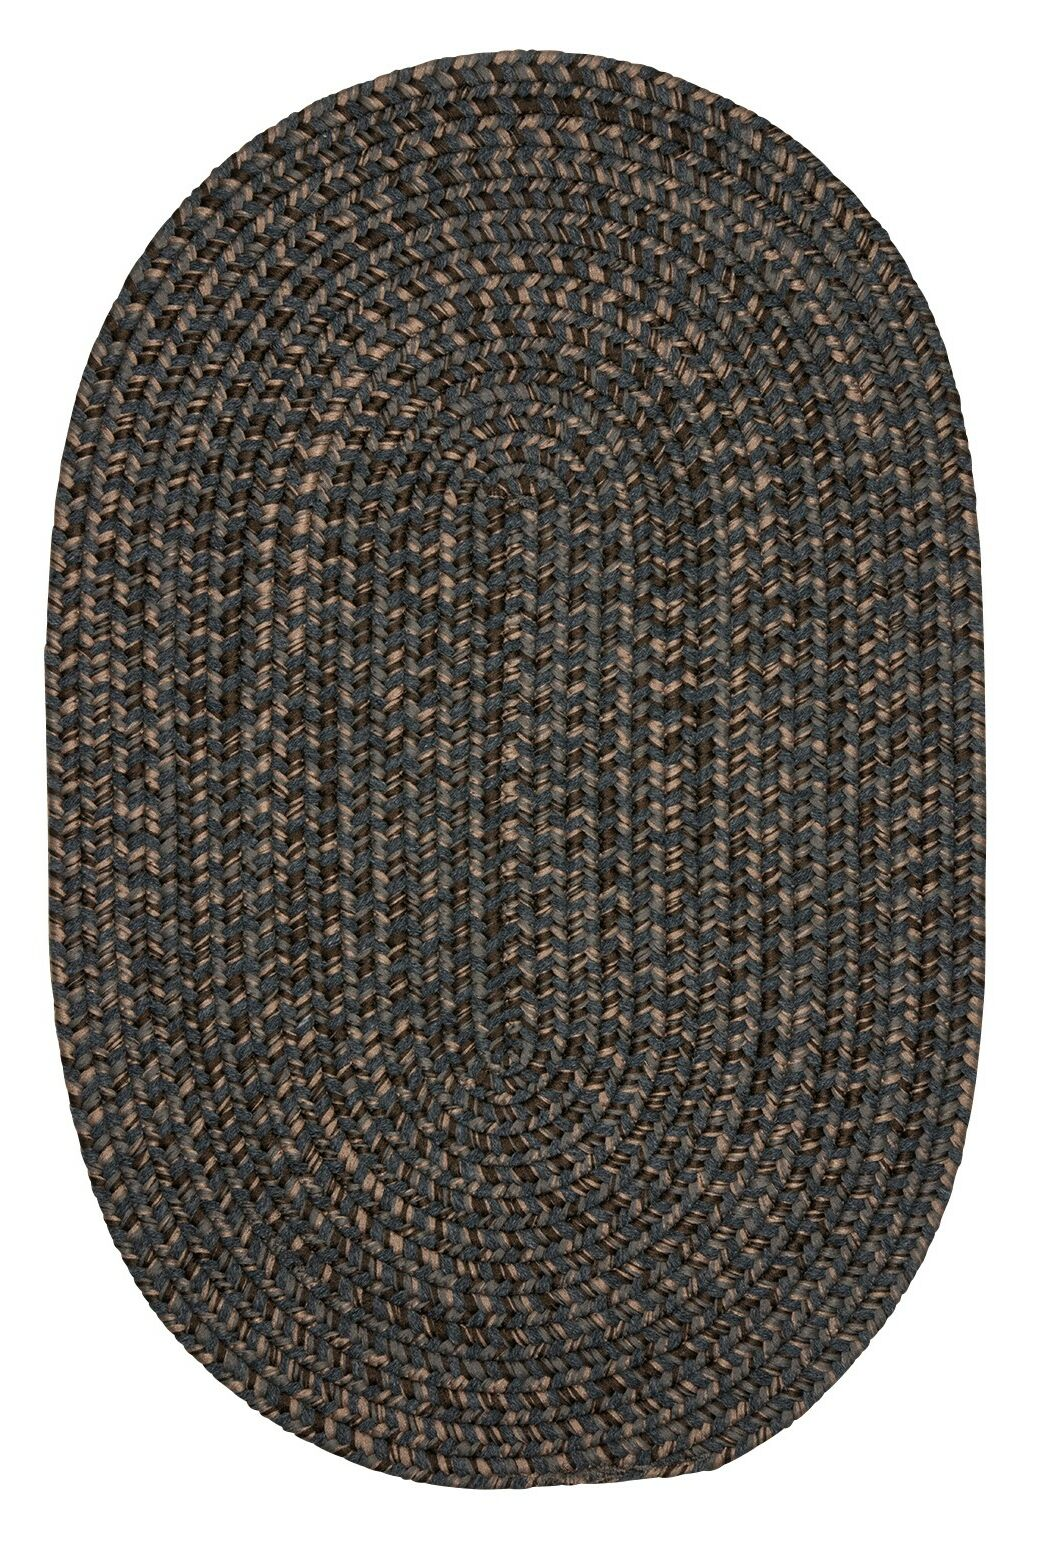 Abey Charcoal Area Rug Rug Size: Oval 4' x 6'